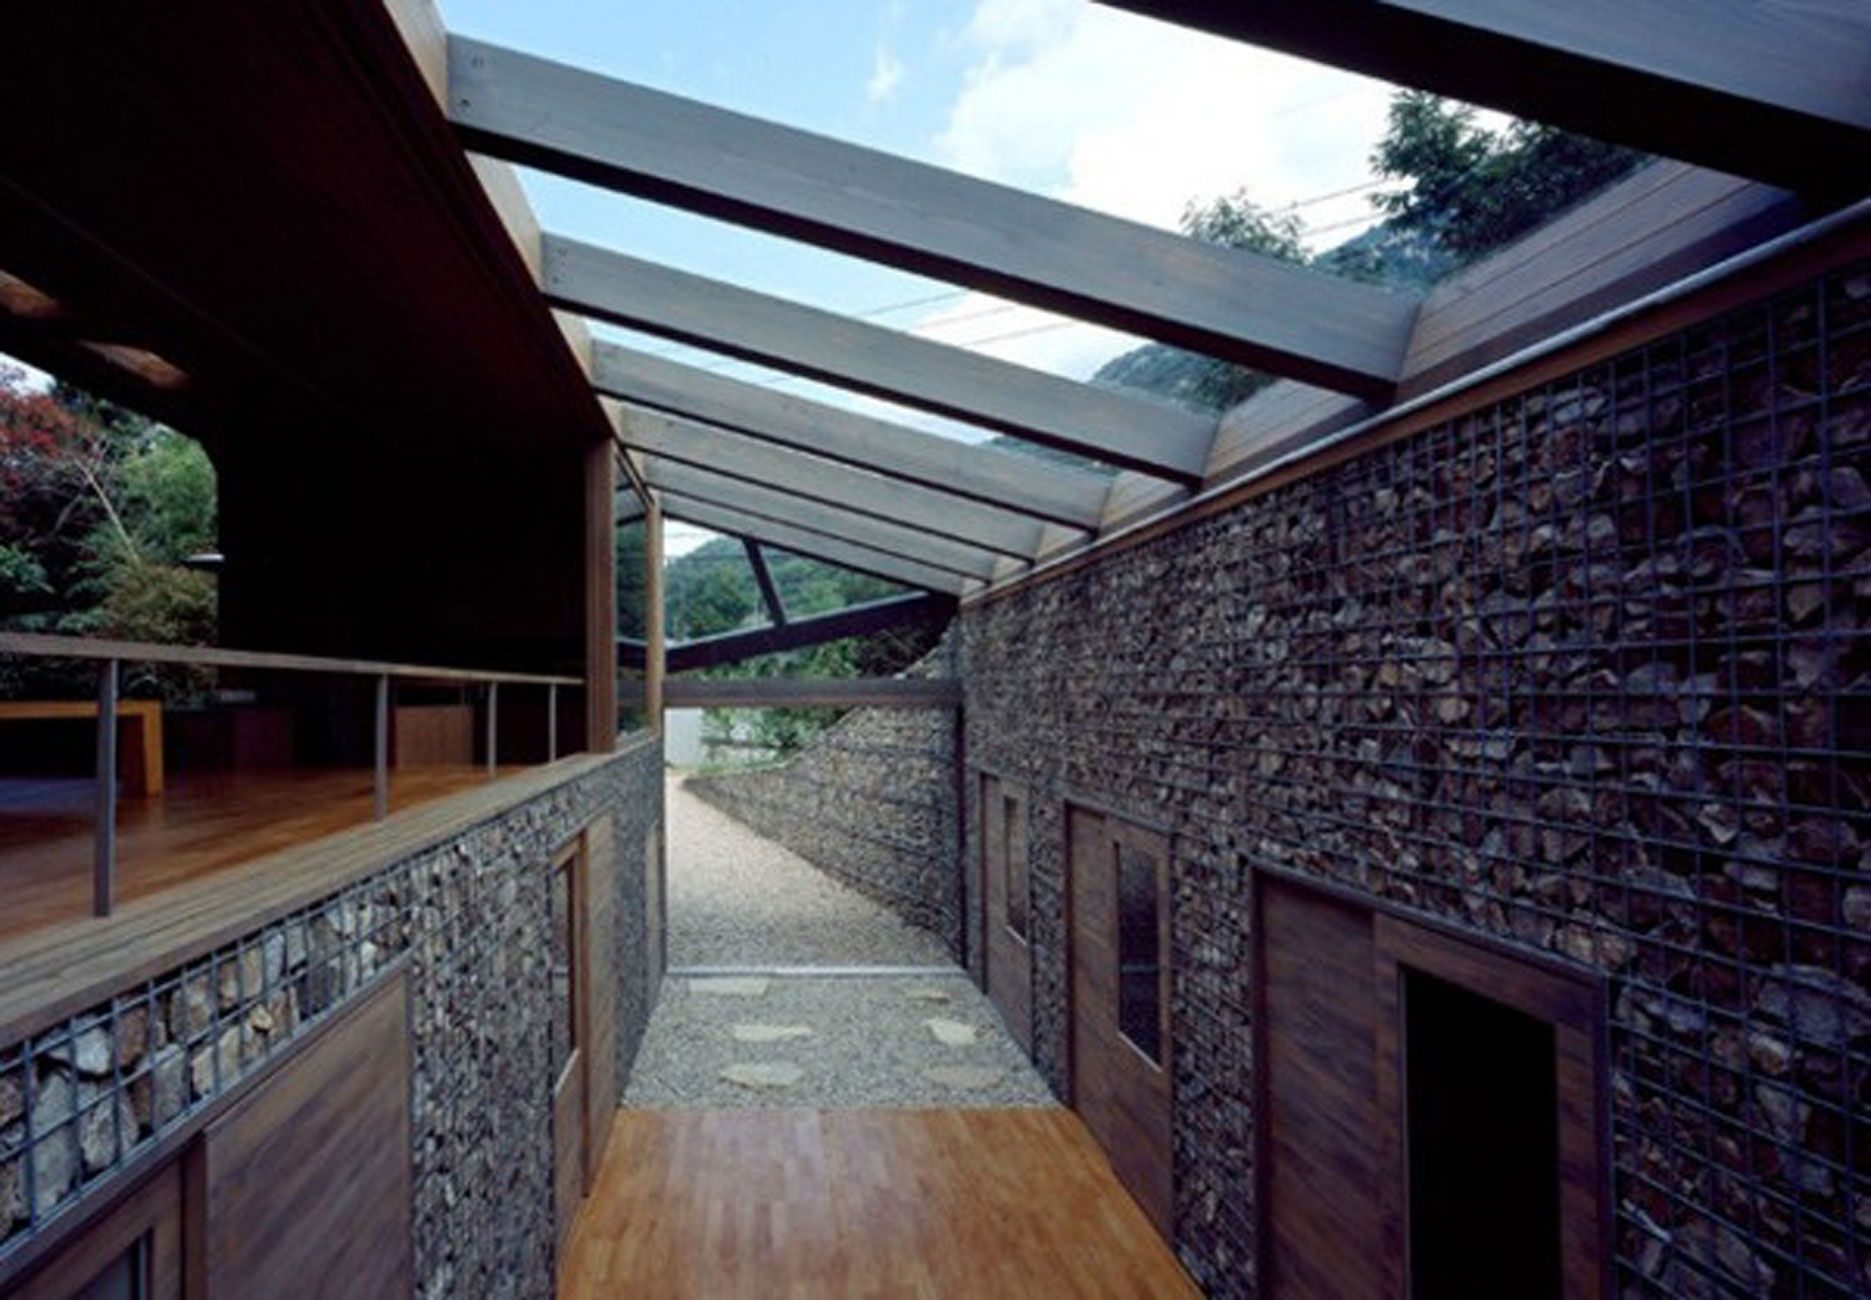 Glass roof highhoise pinterest glass roof glass and for Glass roof design